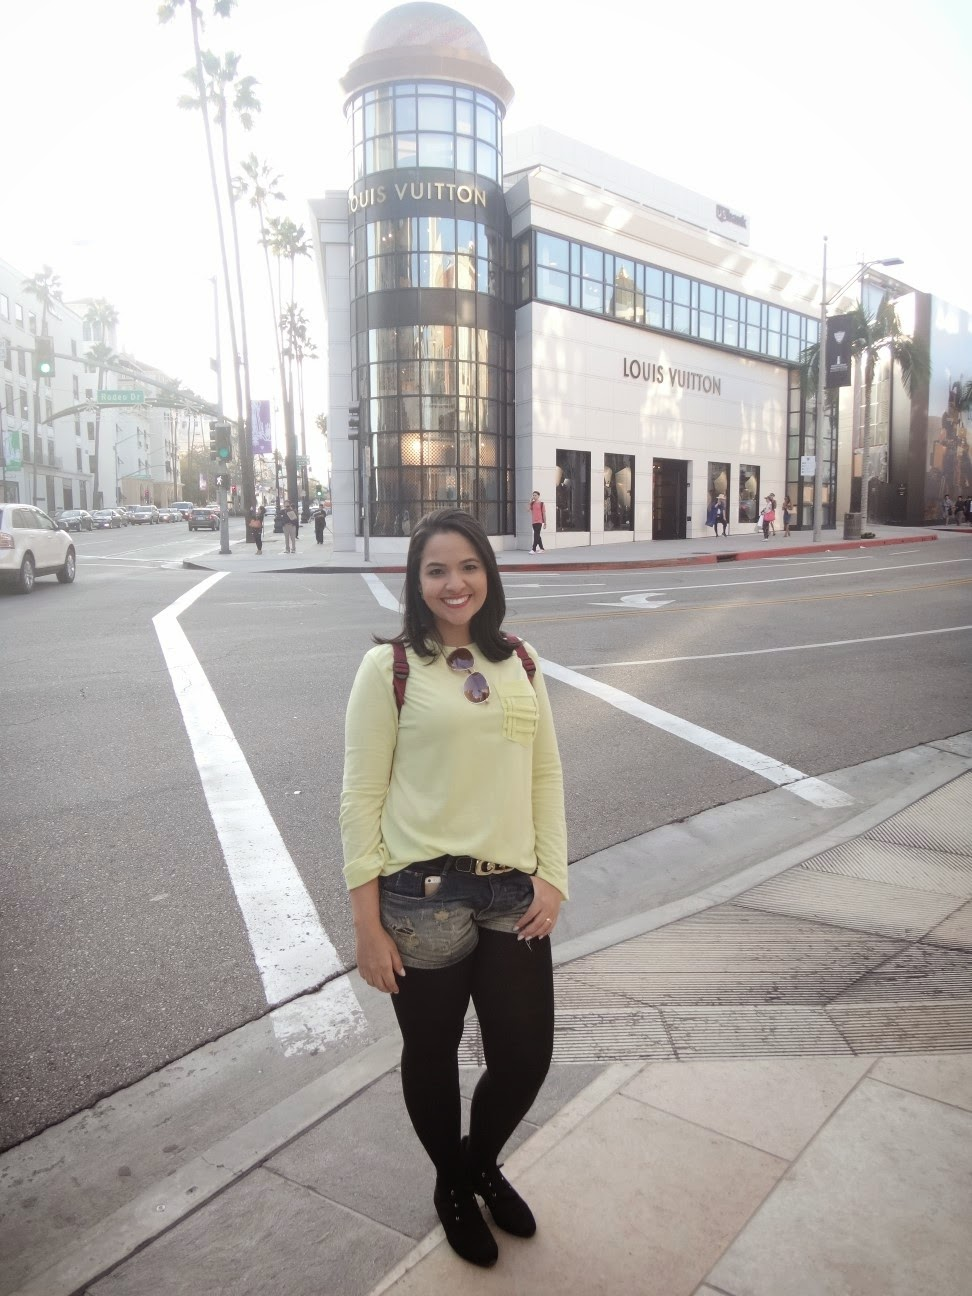 rodeo drive - bervelly hills - los angeles - california